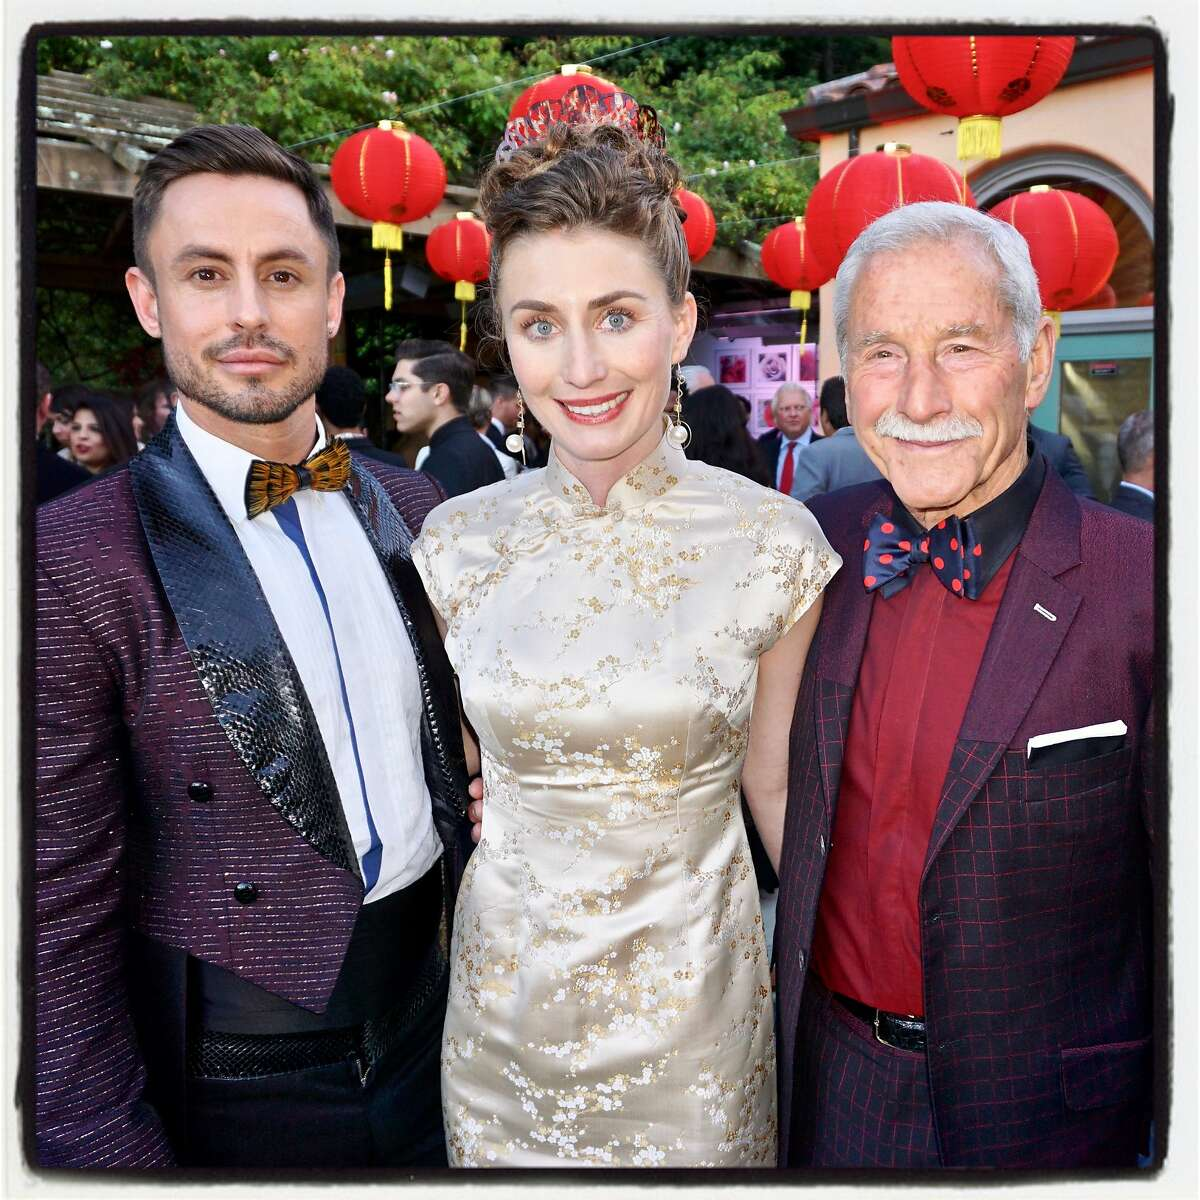 Hotbed Gala co-host Galen Drever (left) with his sister, Isabelle, and father, Maxwell Drever. June 10, 2017.